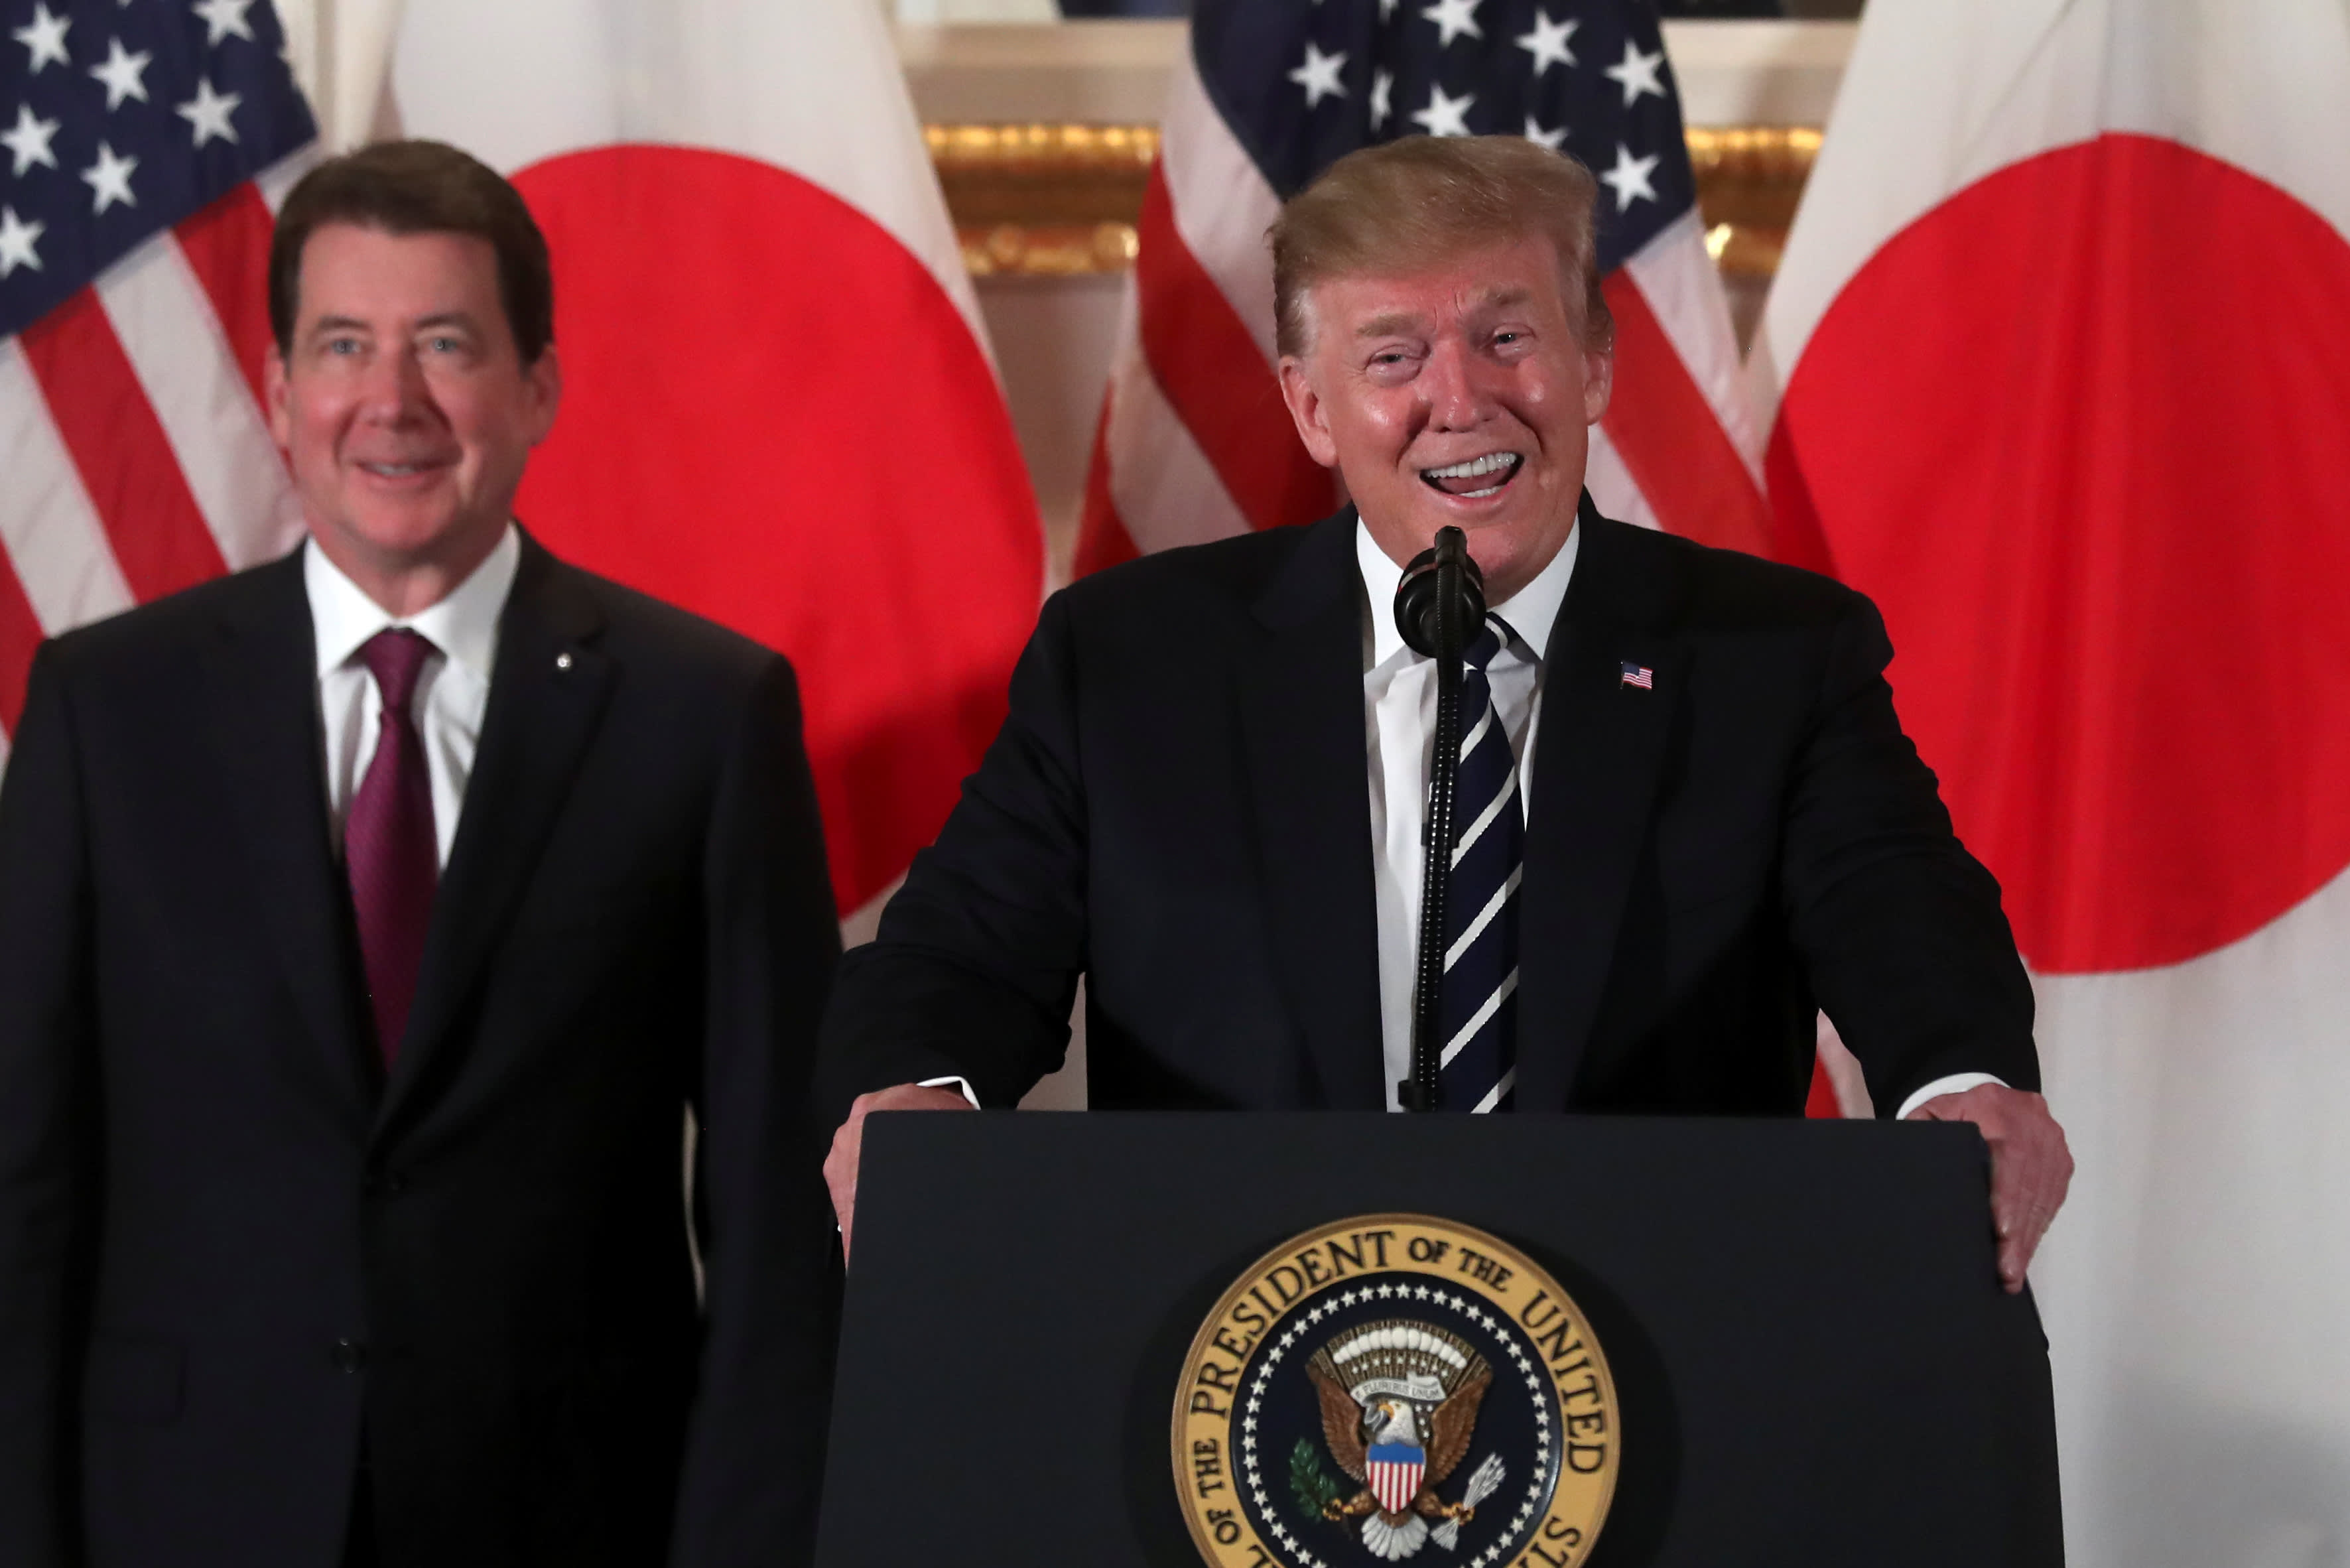 U.S. President Donald Trump attends a Japanese business leaders event with U.S. Ambassador to Japan William Hagerty in Tokyo, Japan May 25, 2019. REUTERS/Jonathan Ernst